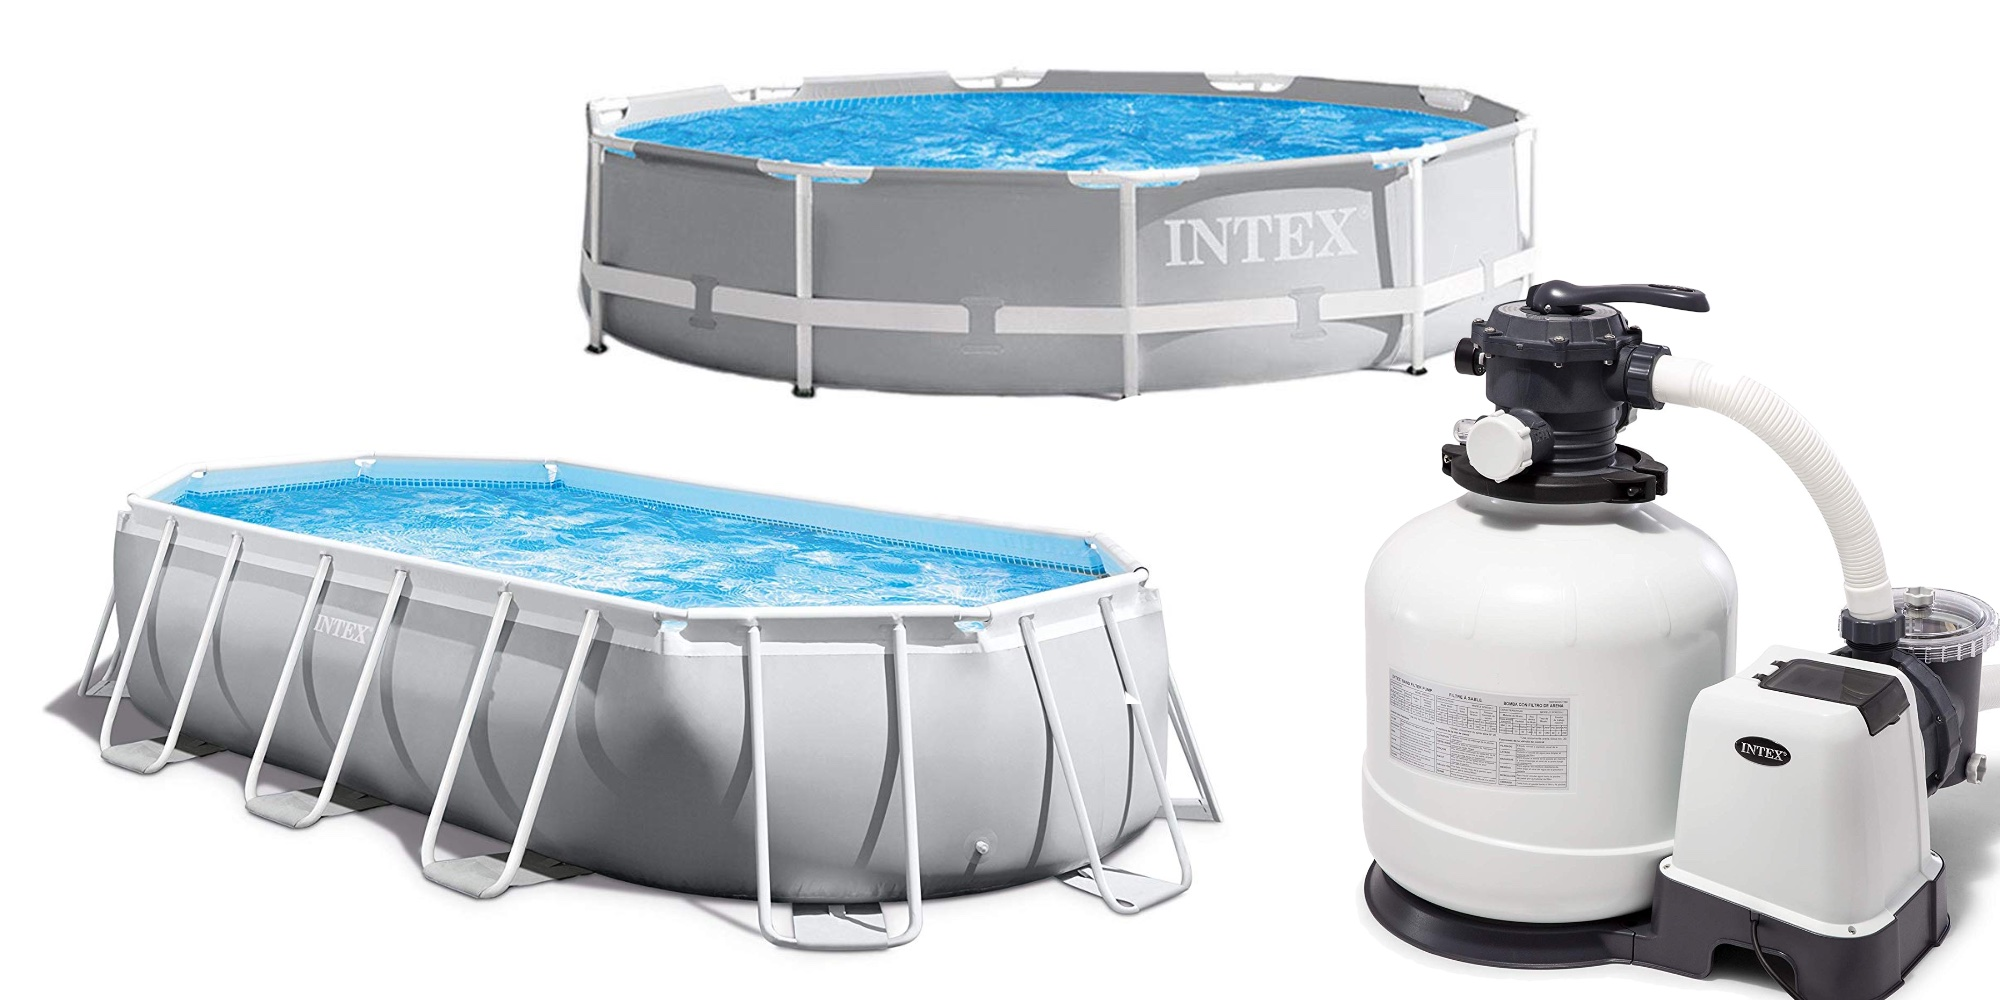 Filterpumpe Pool Amazon Save 25 Or More On Intex Above Ground Pools And Accessories From